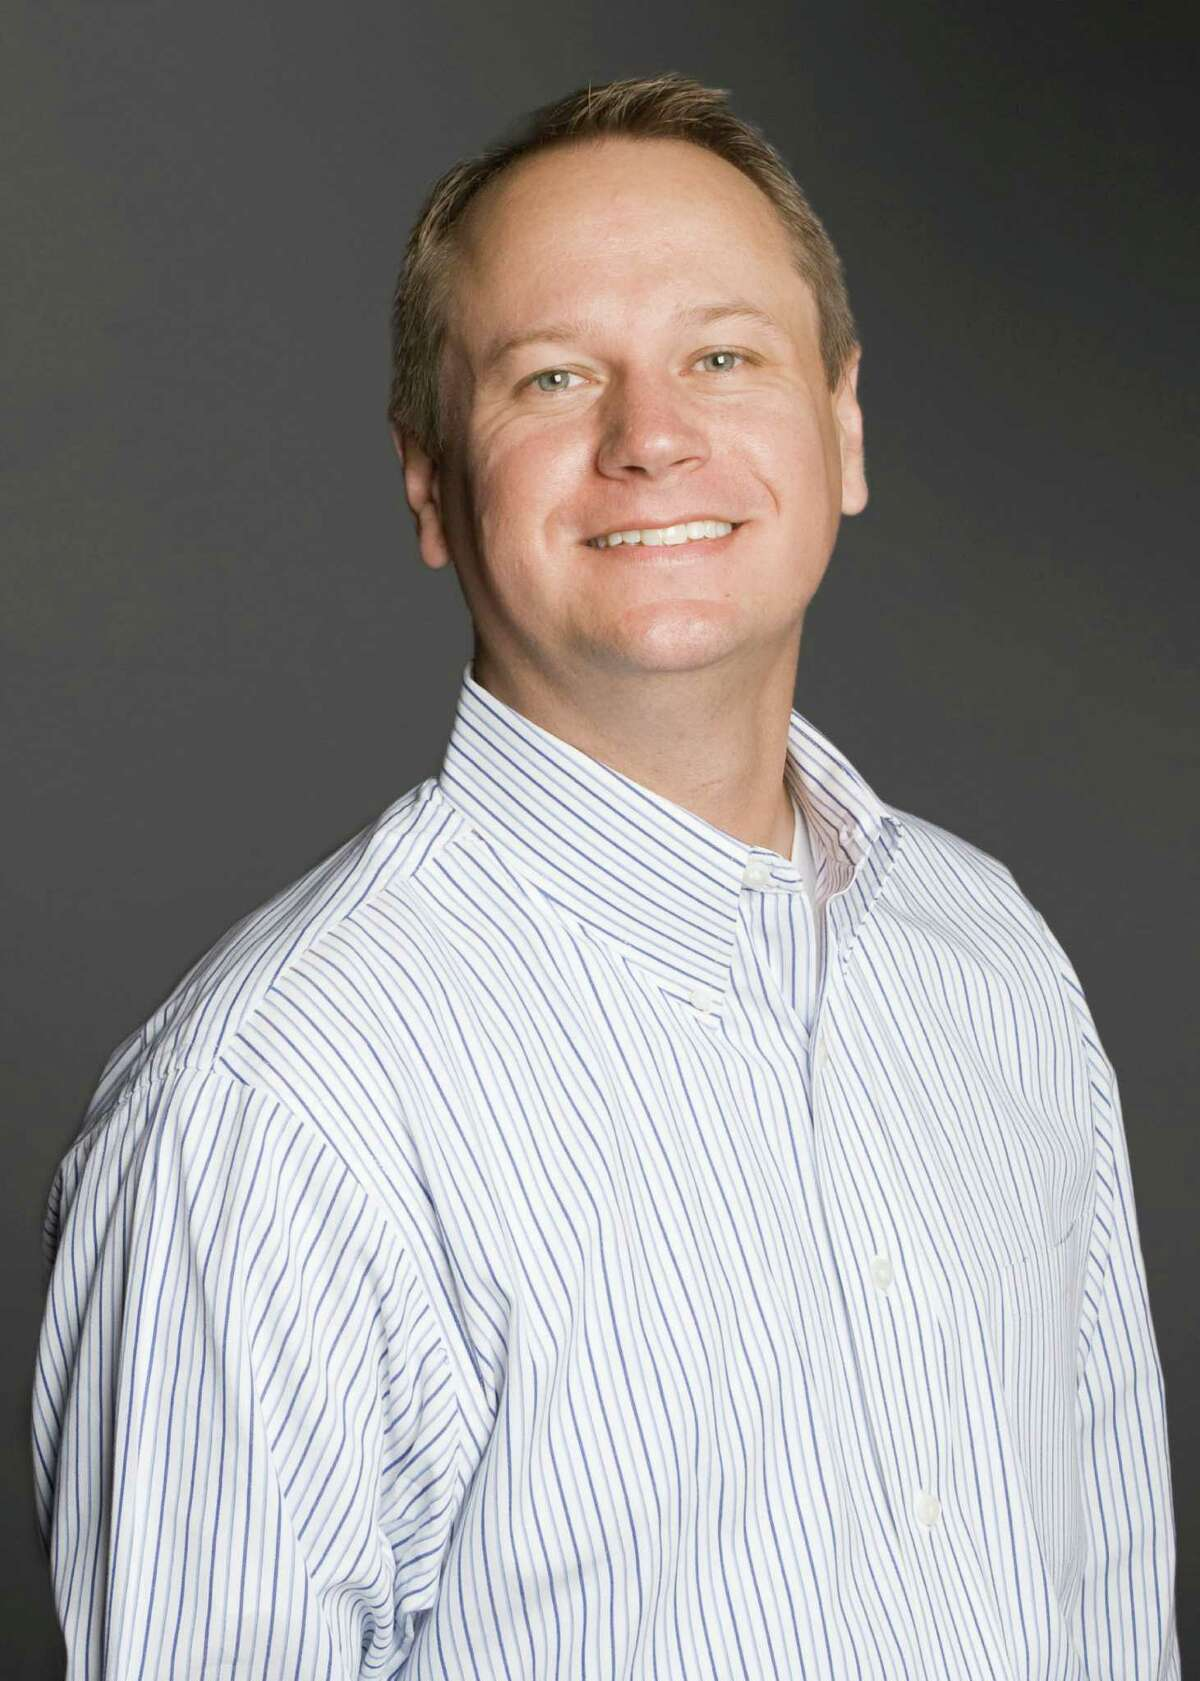 Architecture firm HKS announced the promotion of Jason Schroer to principal.